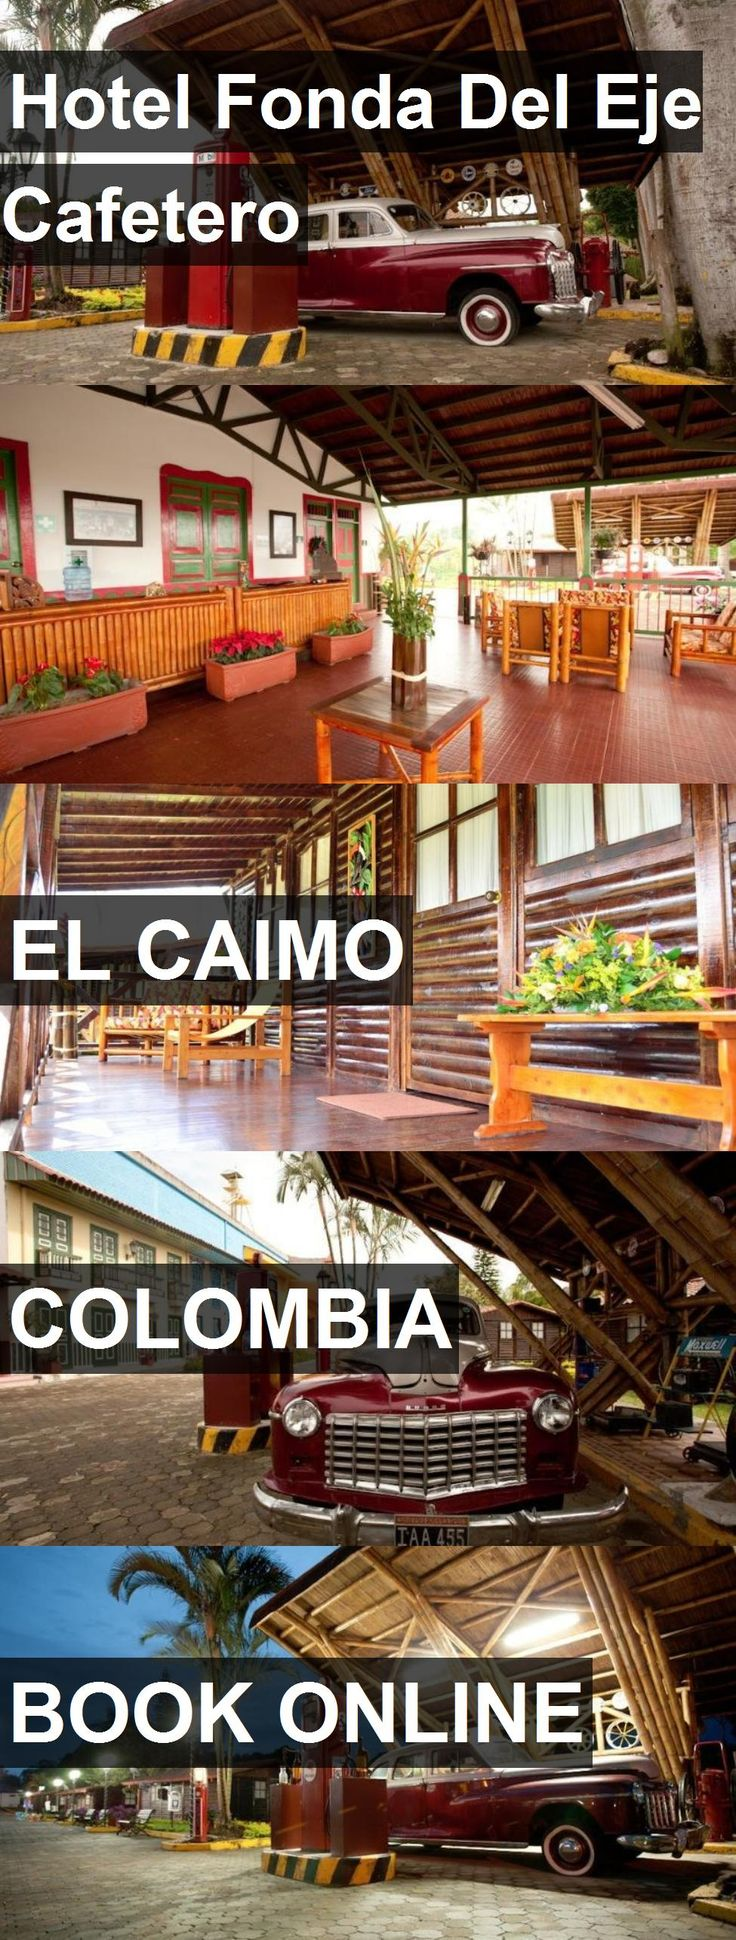 Hotel Fonda Del Eje Cafetero in El Caimo, Colombia. For more information, photos, reviews and best prices please follow the link. #Colombia #ElCaimo #travel #vacation #hotel